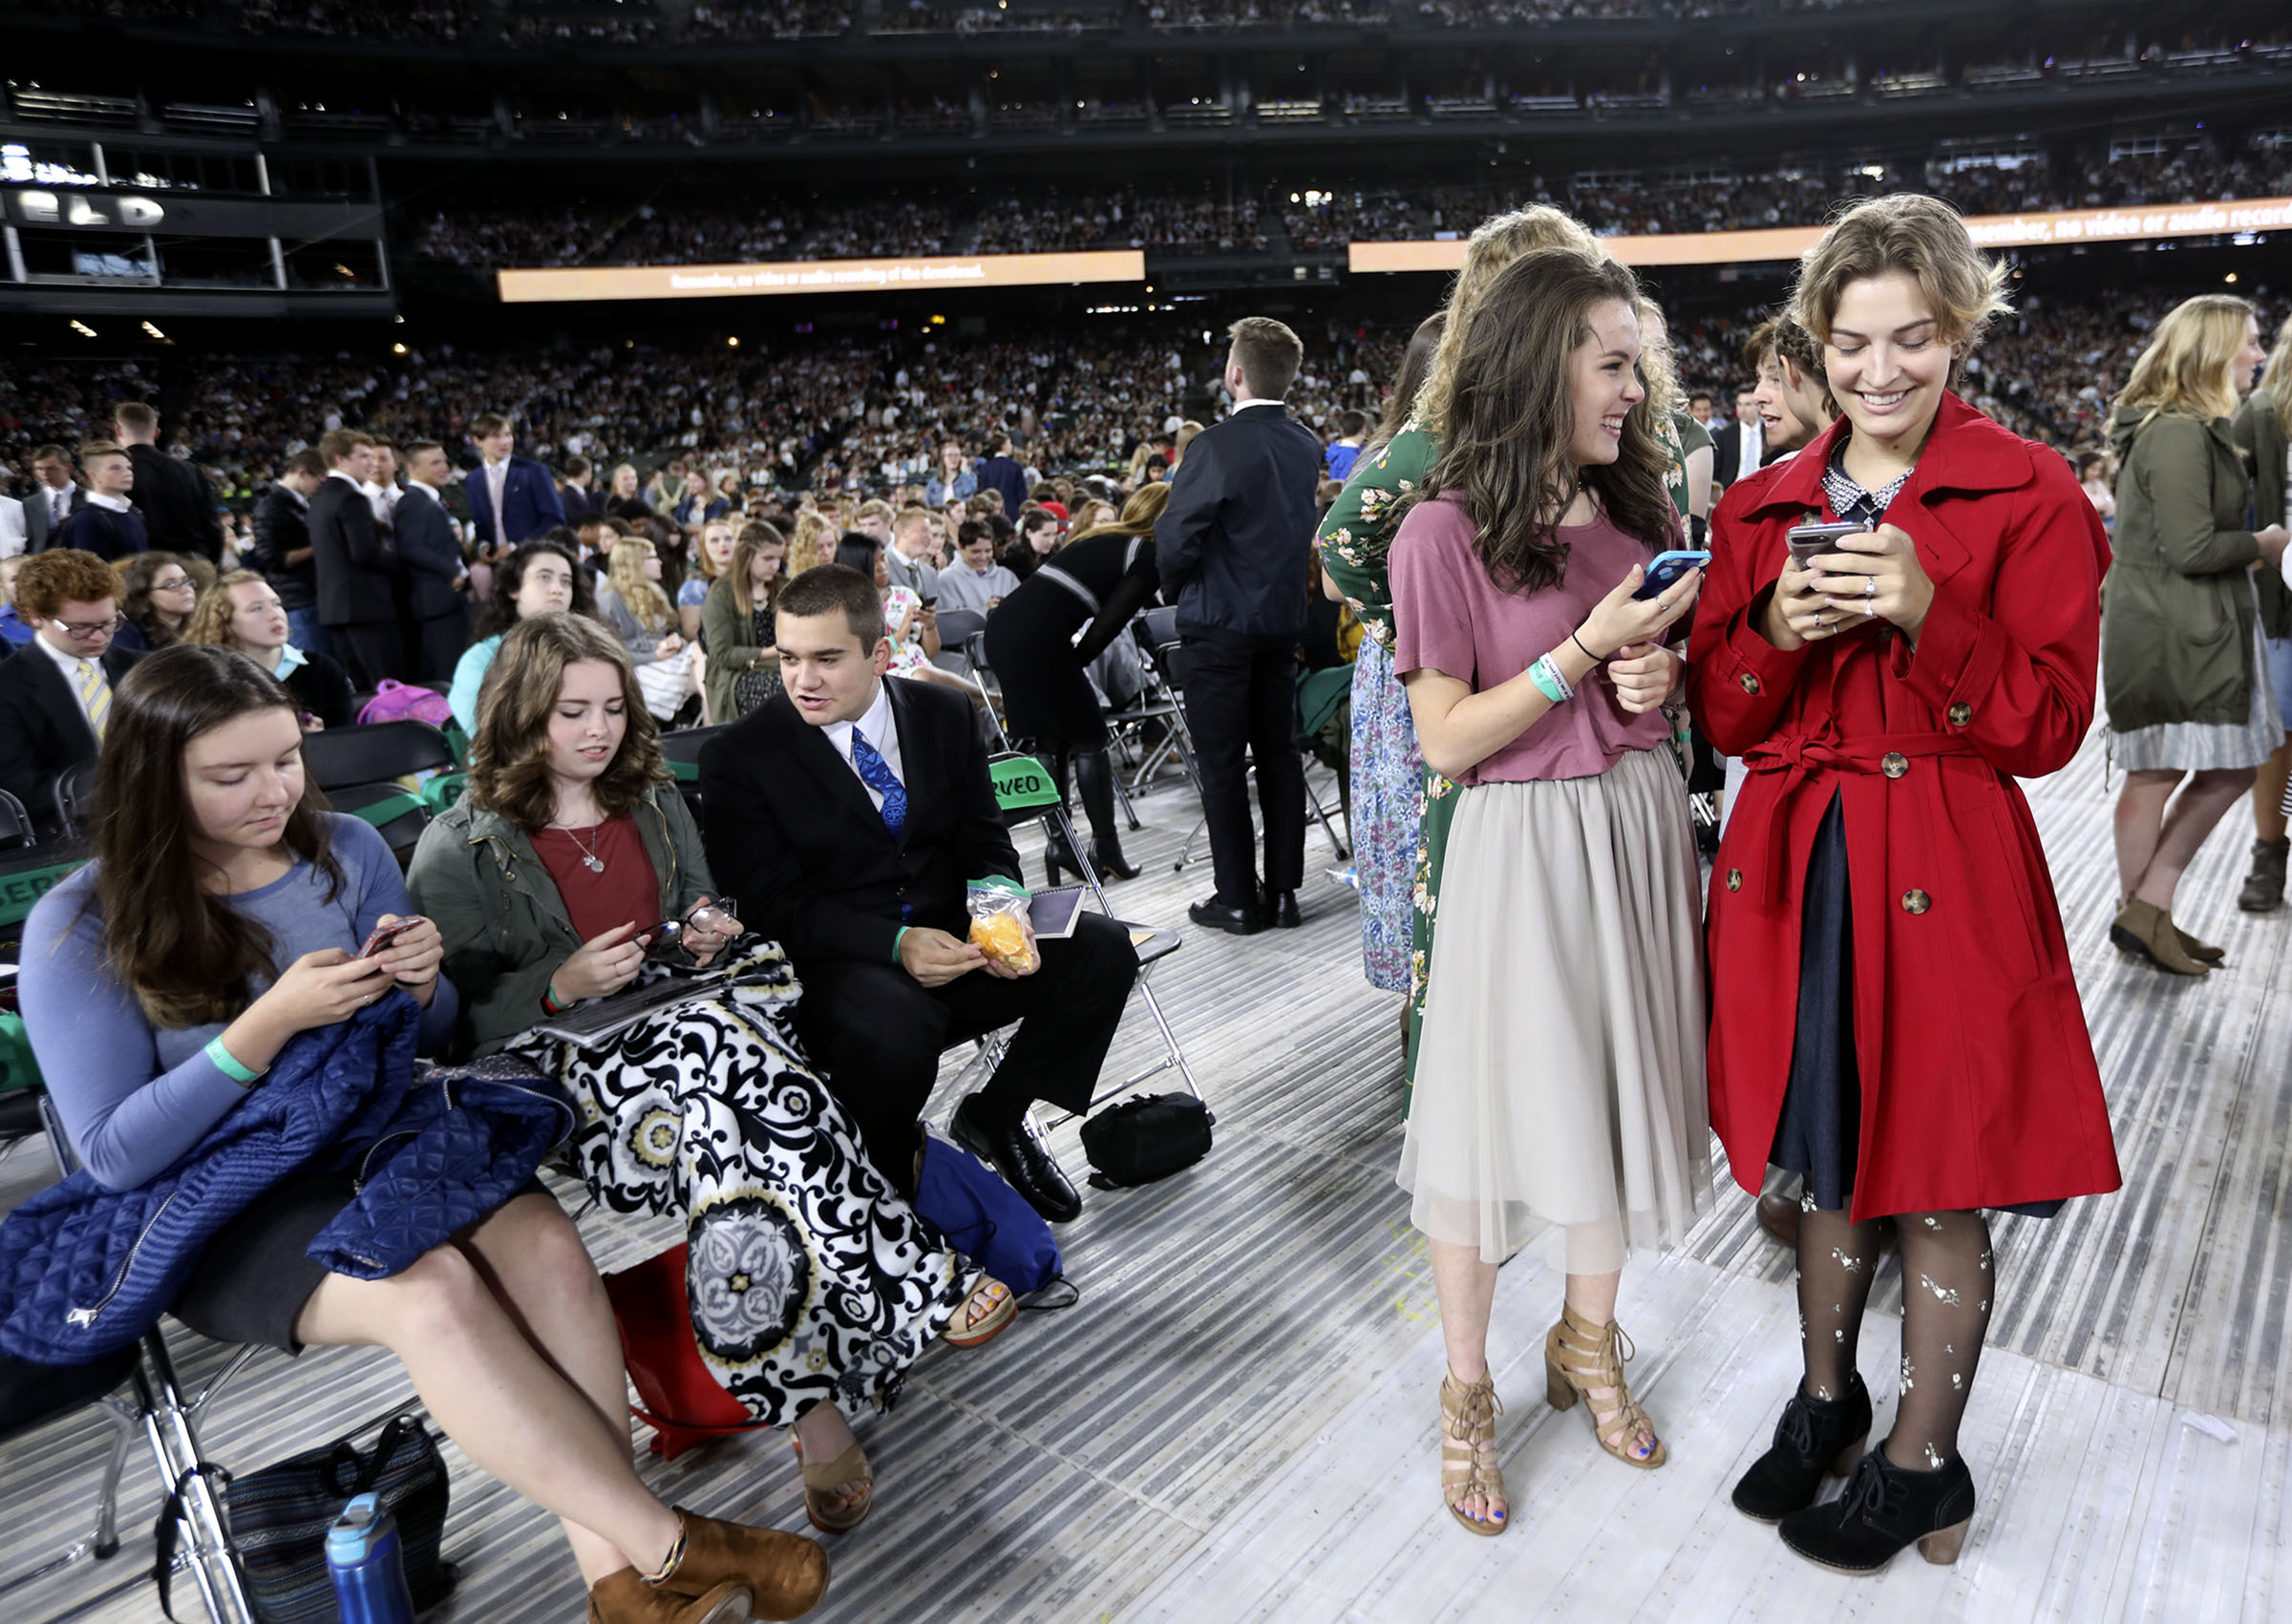 Teens wait for President Russell M. Nelson of The Church of Jesus Christ of Latter-day Saints to speak at Safeco Field in Seattle, Wash., on Saturday, Sept. 15, 2018.